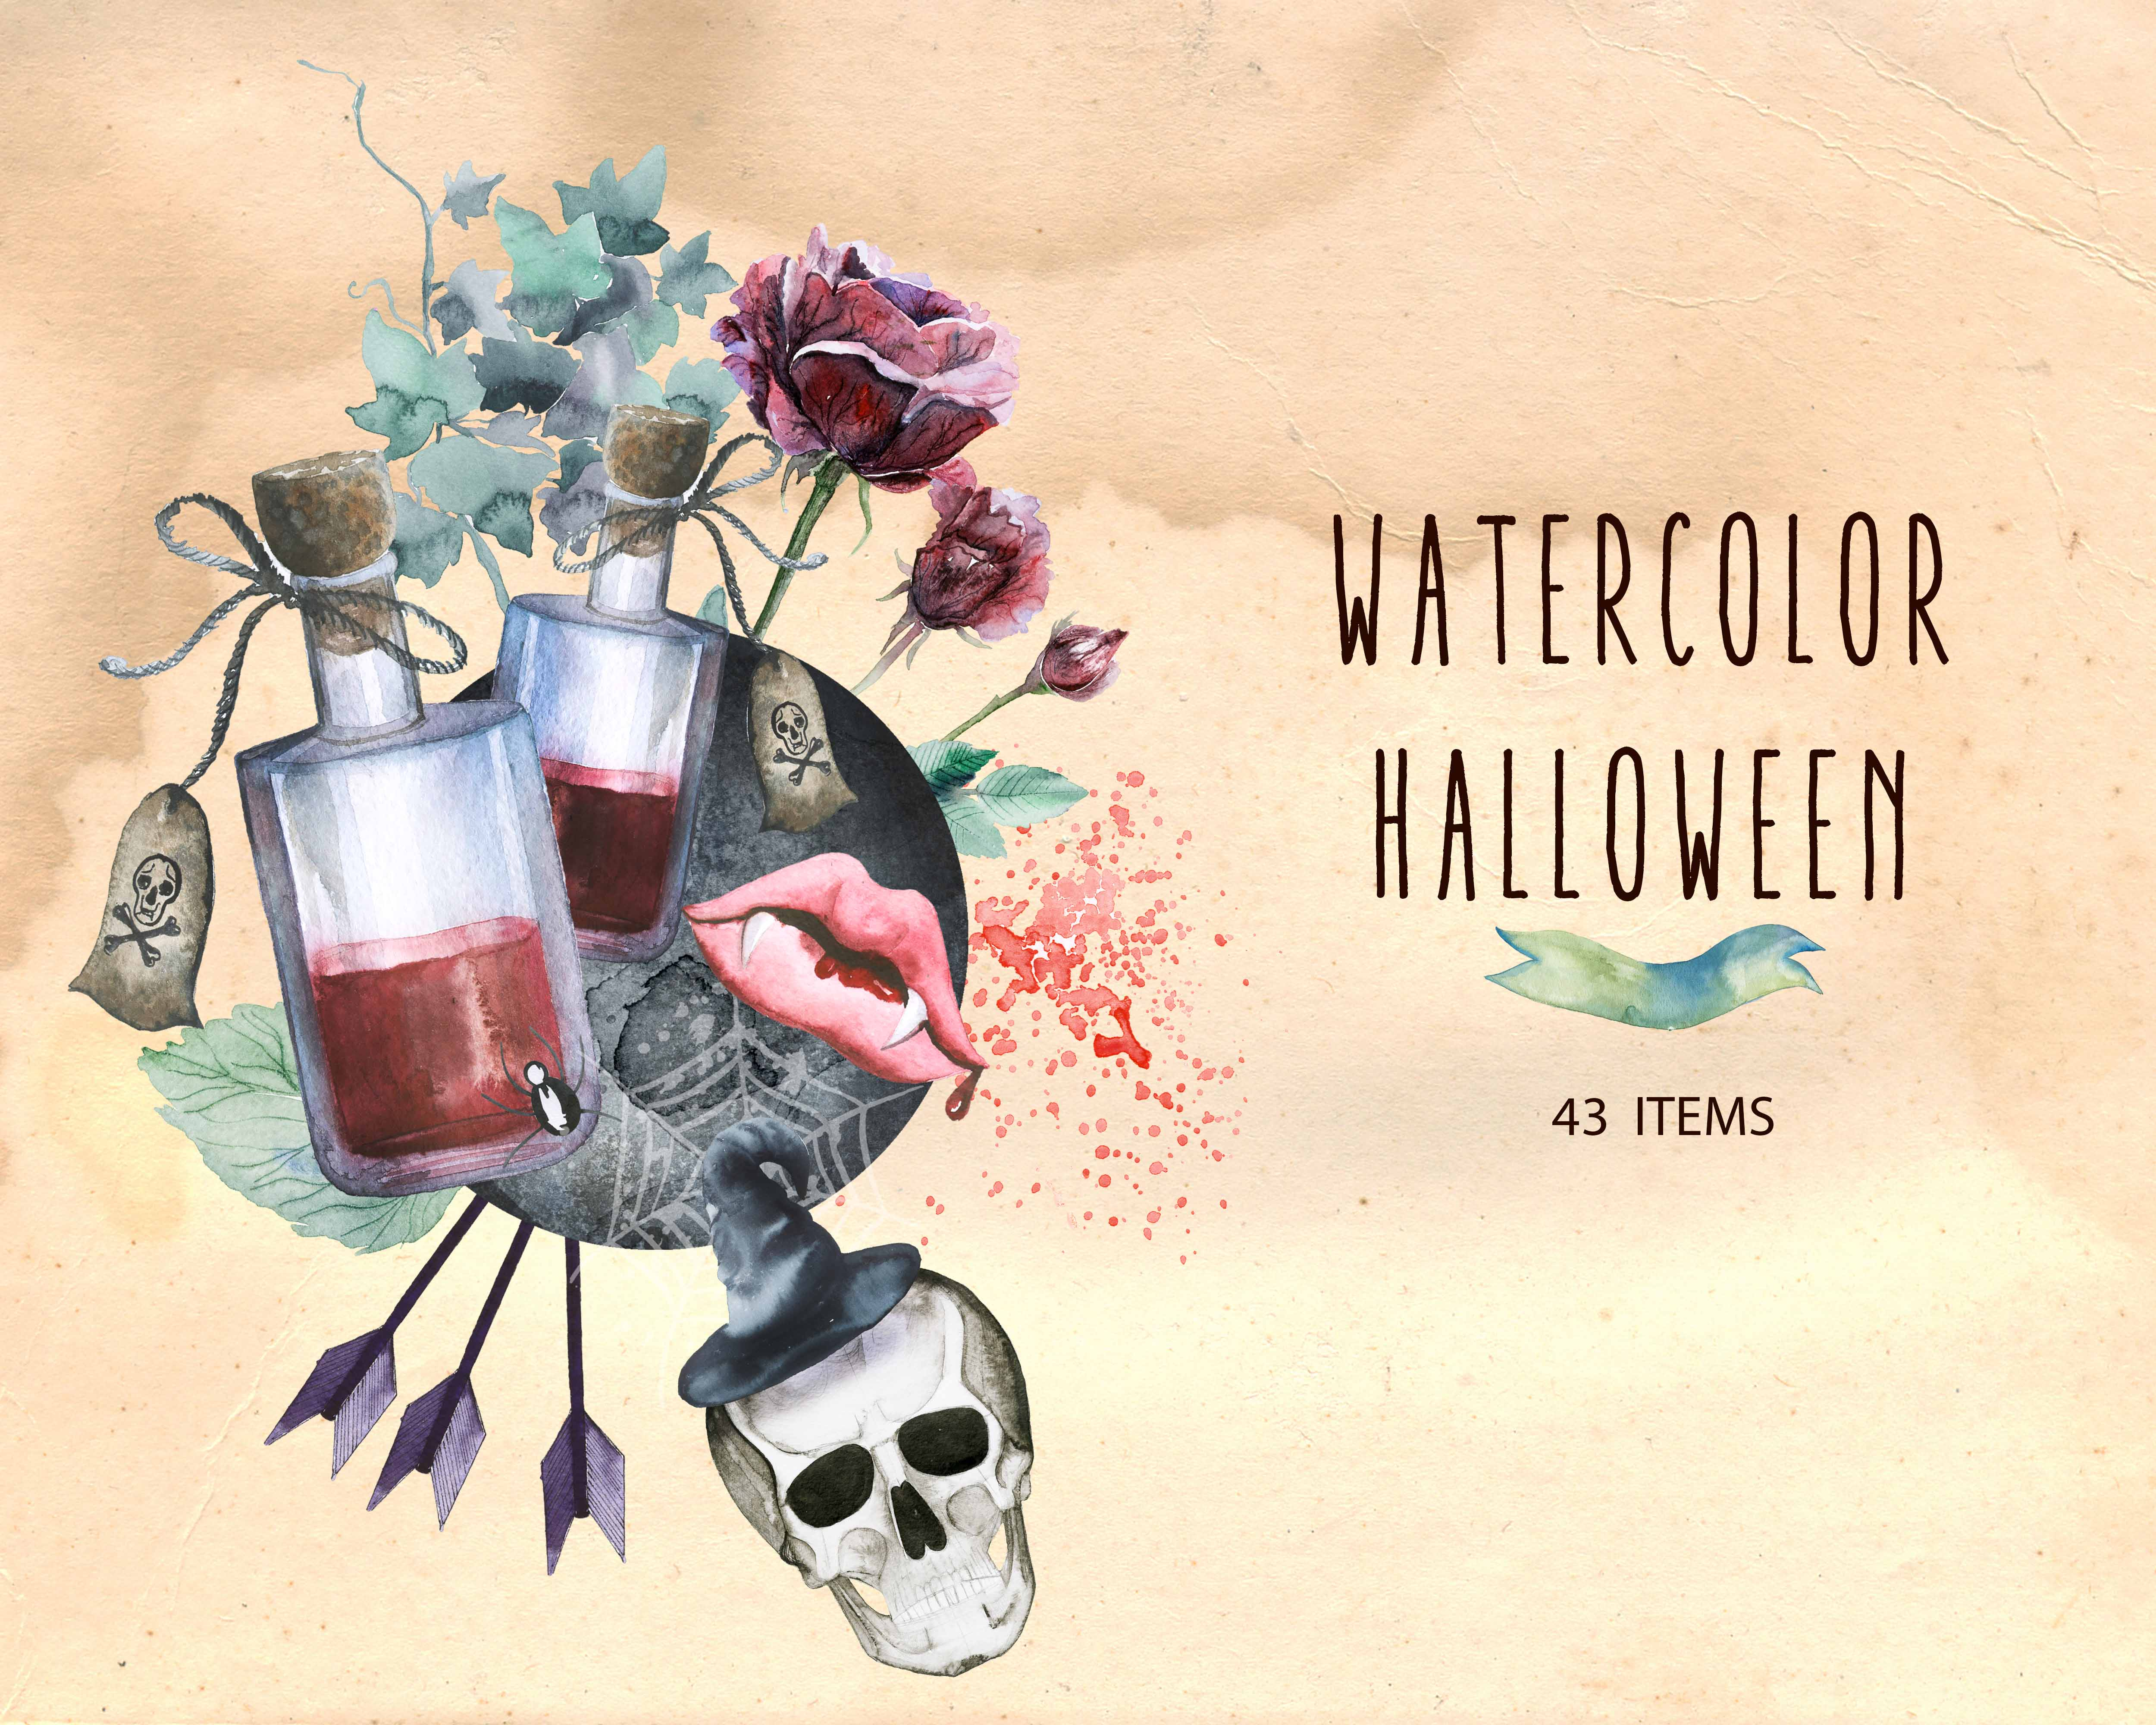 Spooky Vector Images - 43 Watercolor Halloween